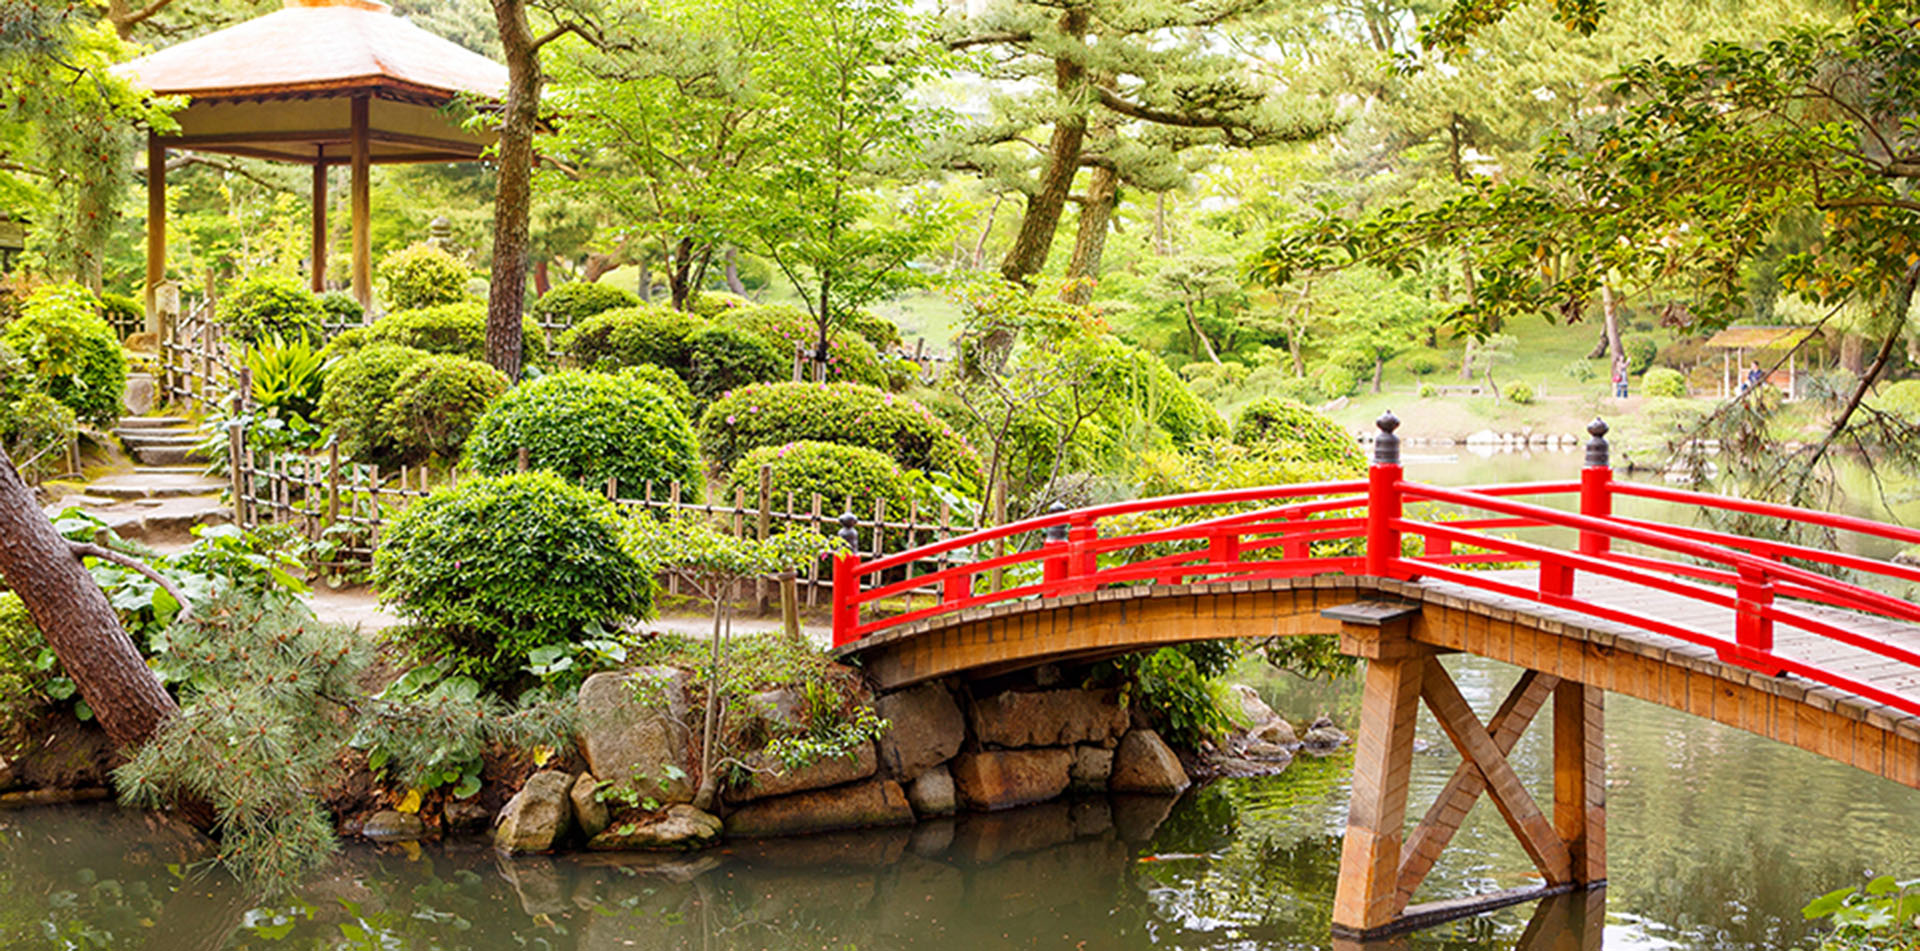 Shukkeien Garden Red Bridge, Japan